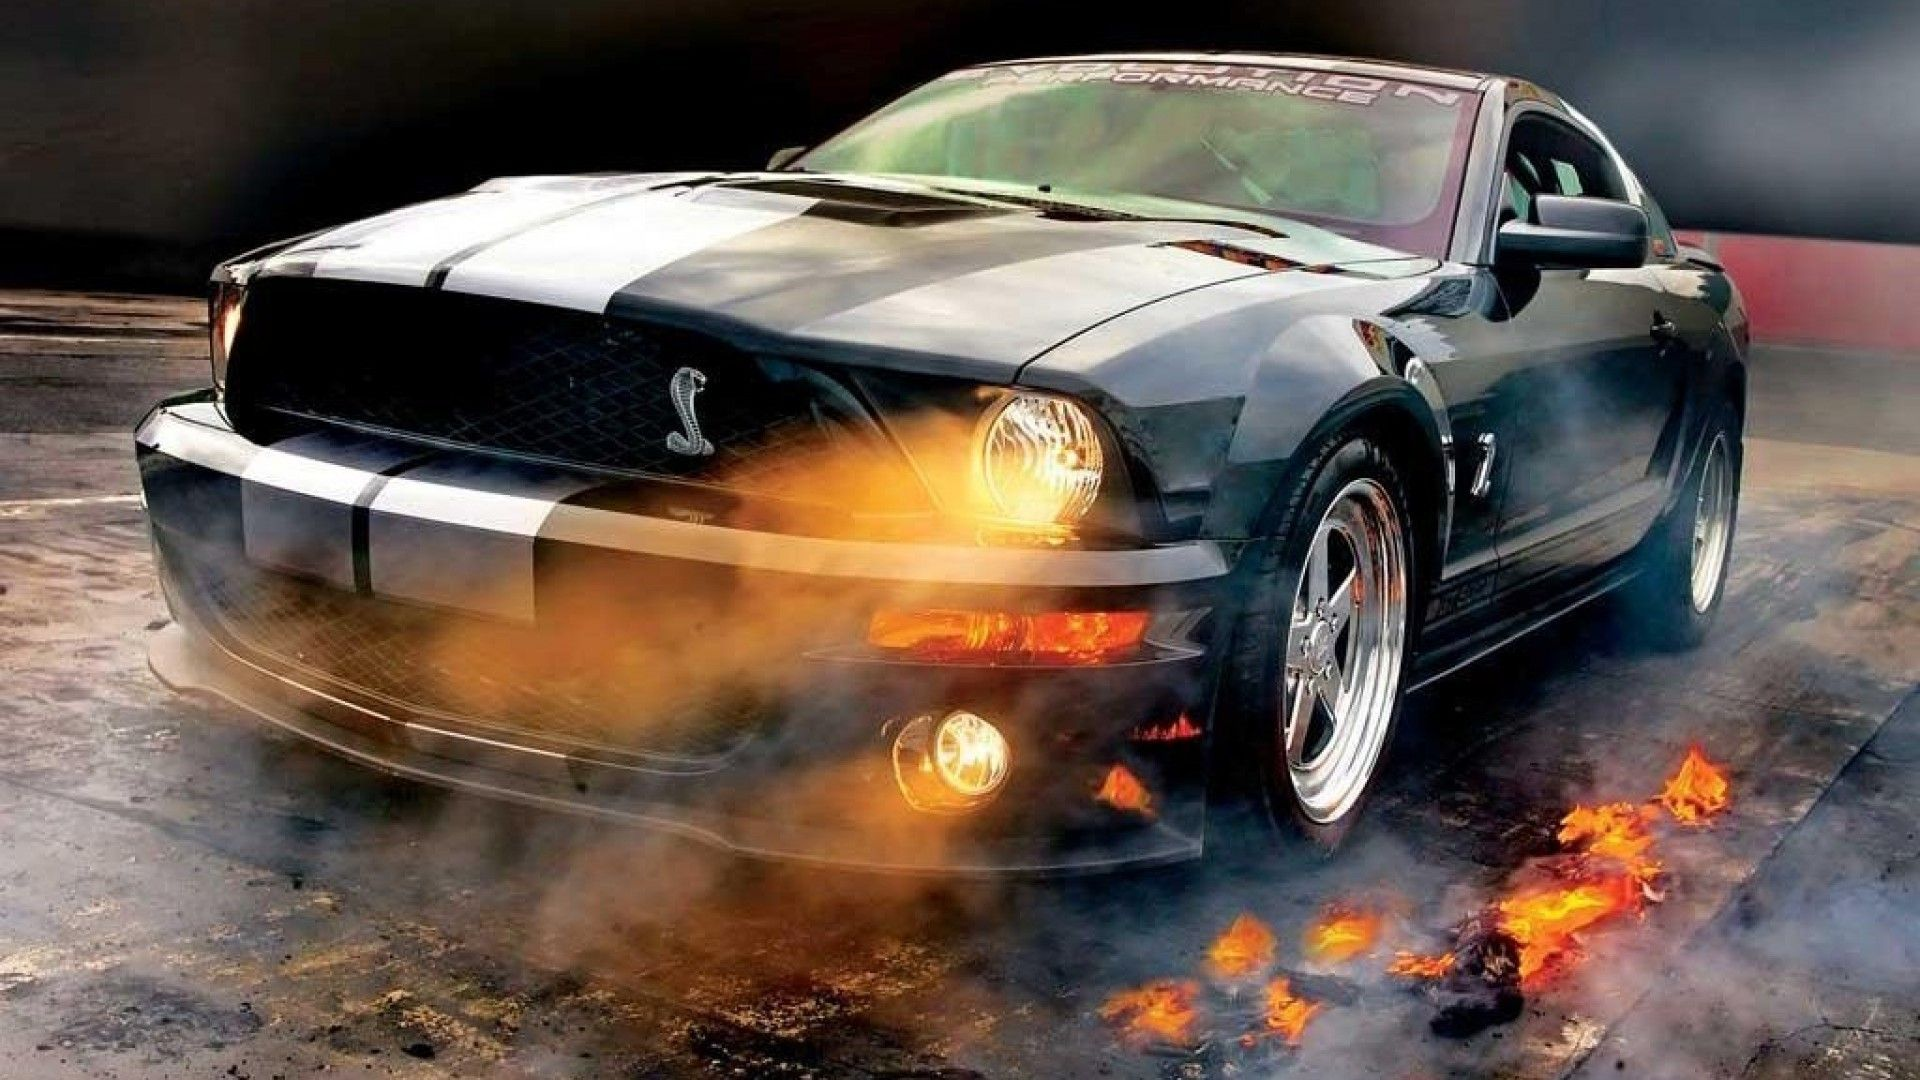 Res 1920x1080 Mustang Full Hd Quality Wallpapers For Pc Mac Laptop Tablet Mobile Phone In 2020 Ford Mustang Wallpaper Ford Mustang Cobra Mustang Cobra